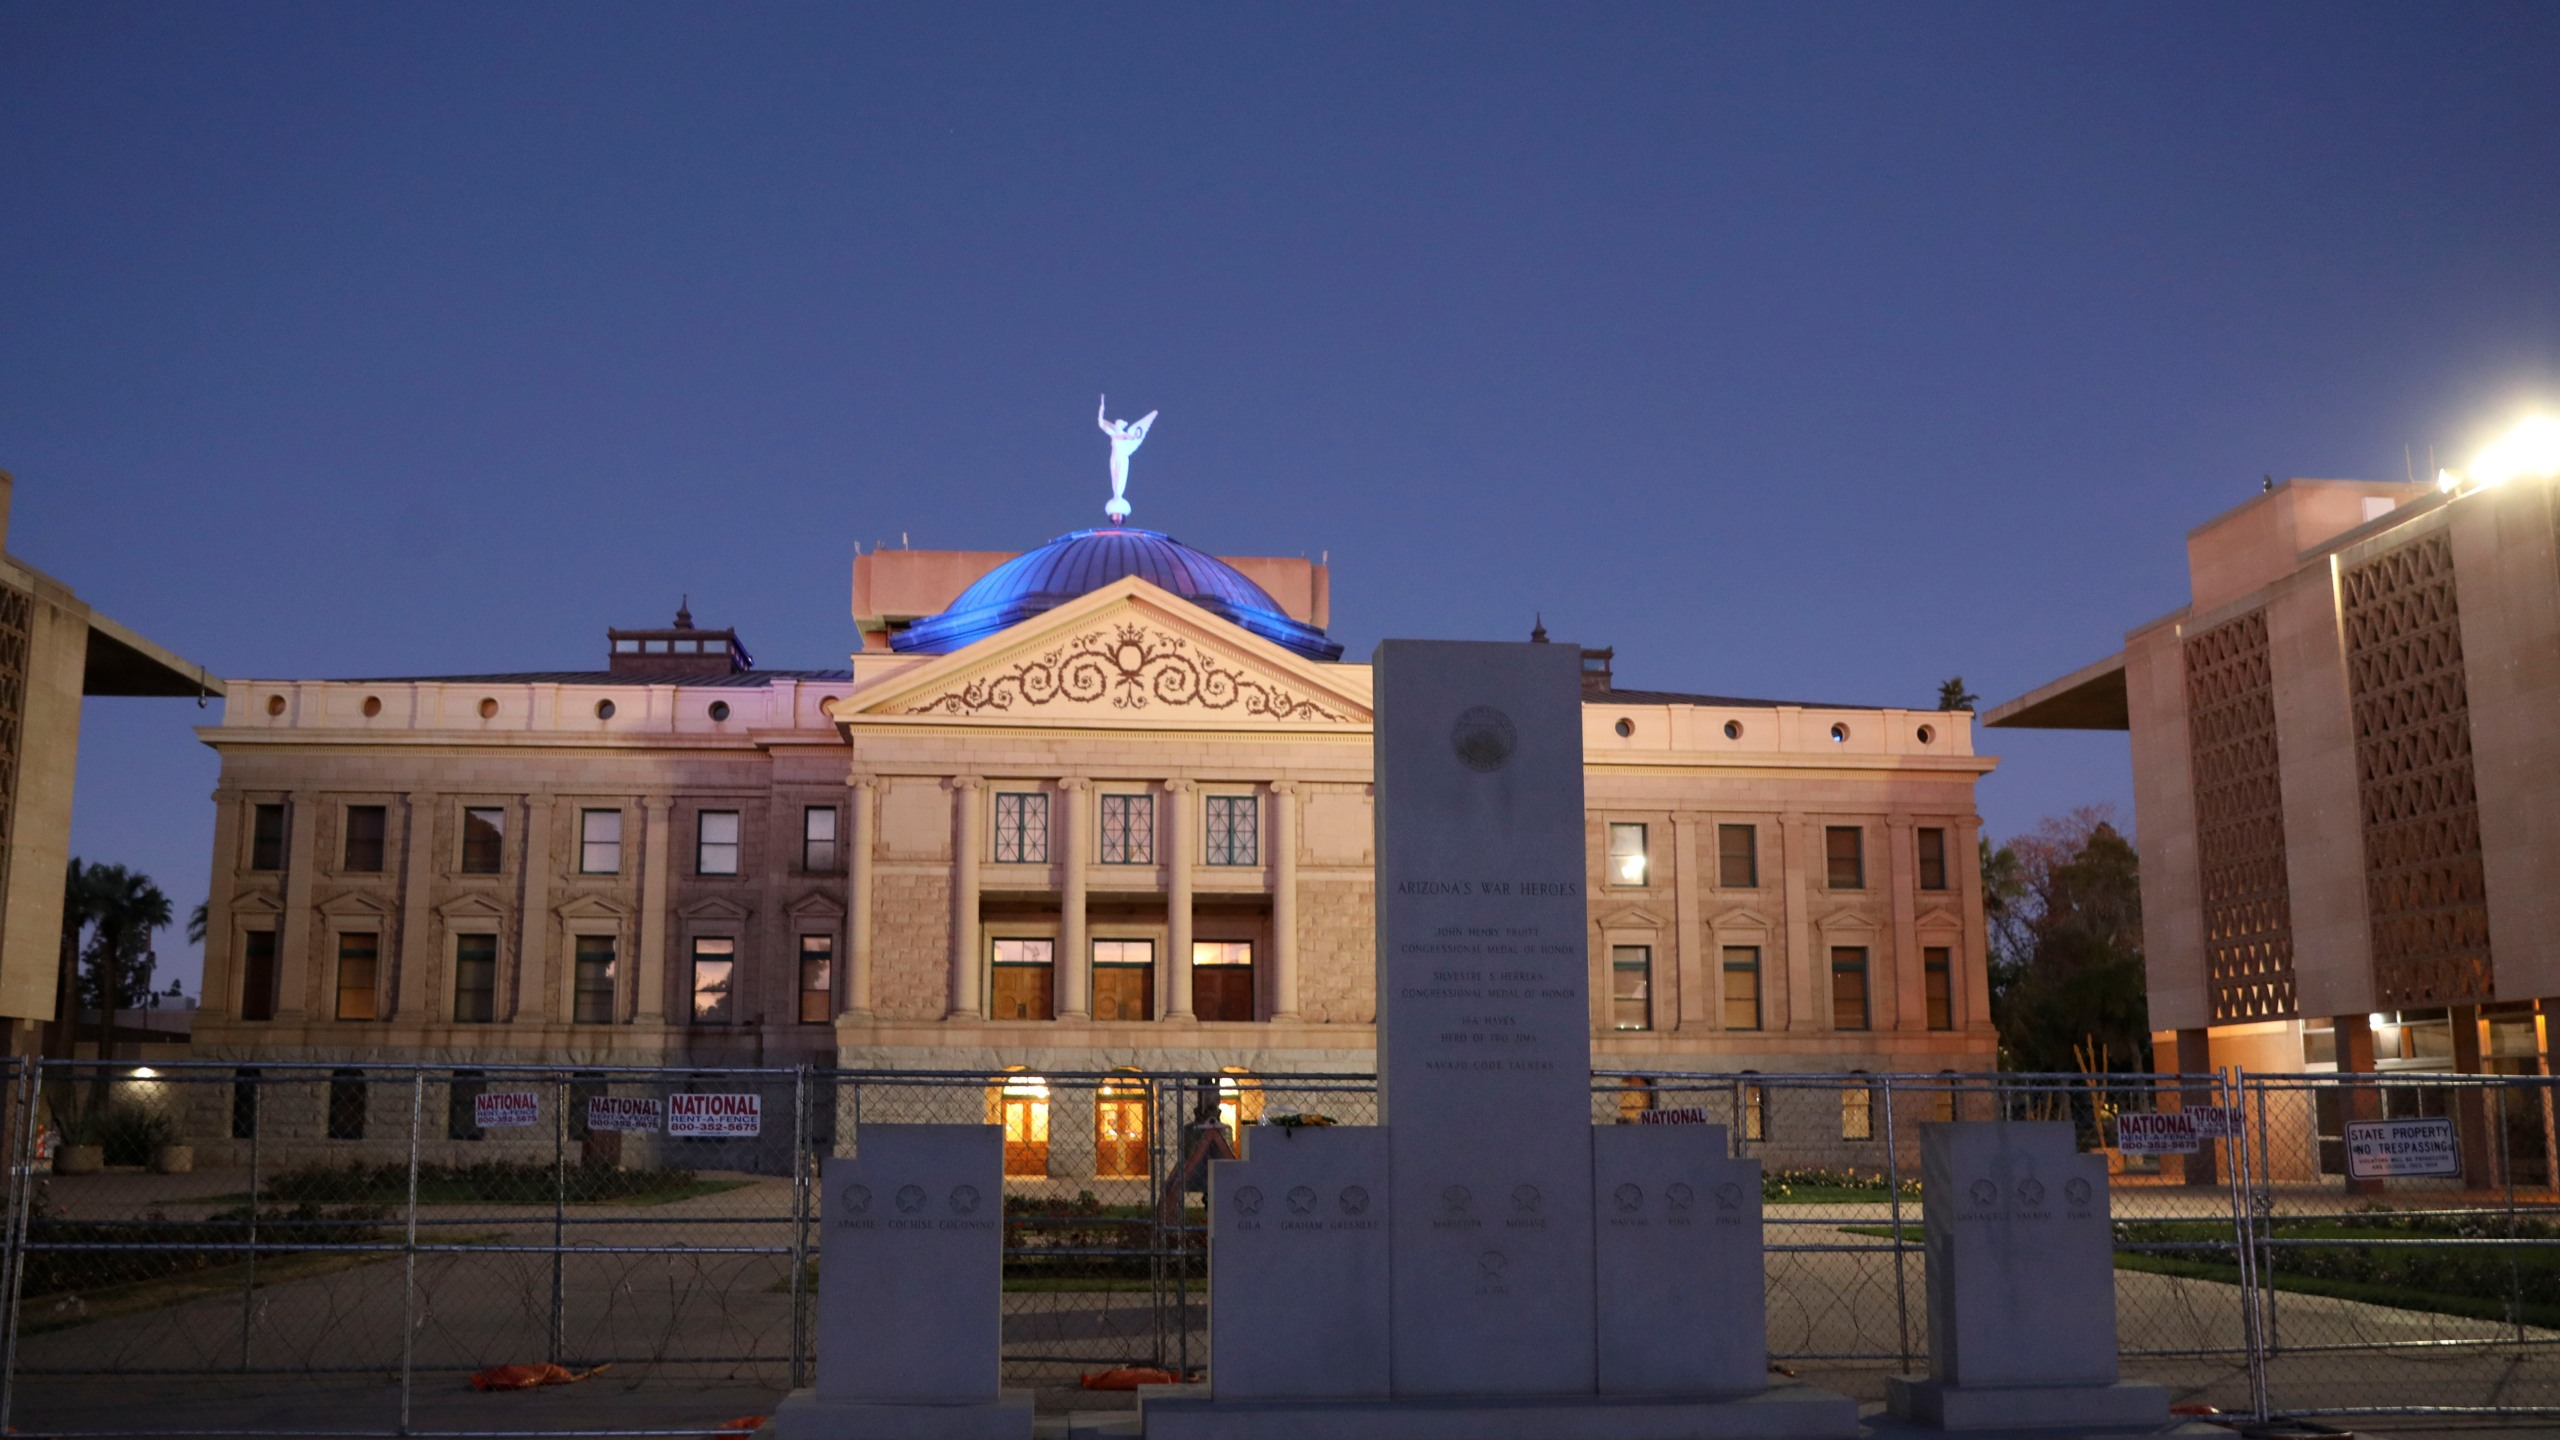 View of the Arizona State Capitol building on January 17, 2021 in Phoenix, Arizona. (Sandy Huffaker/Getty Images)